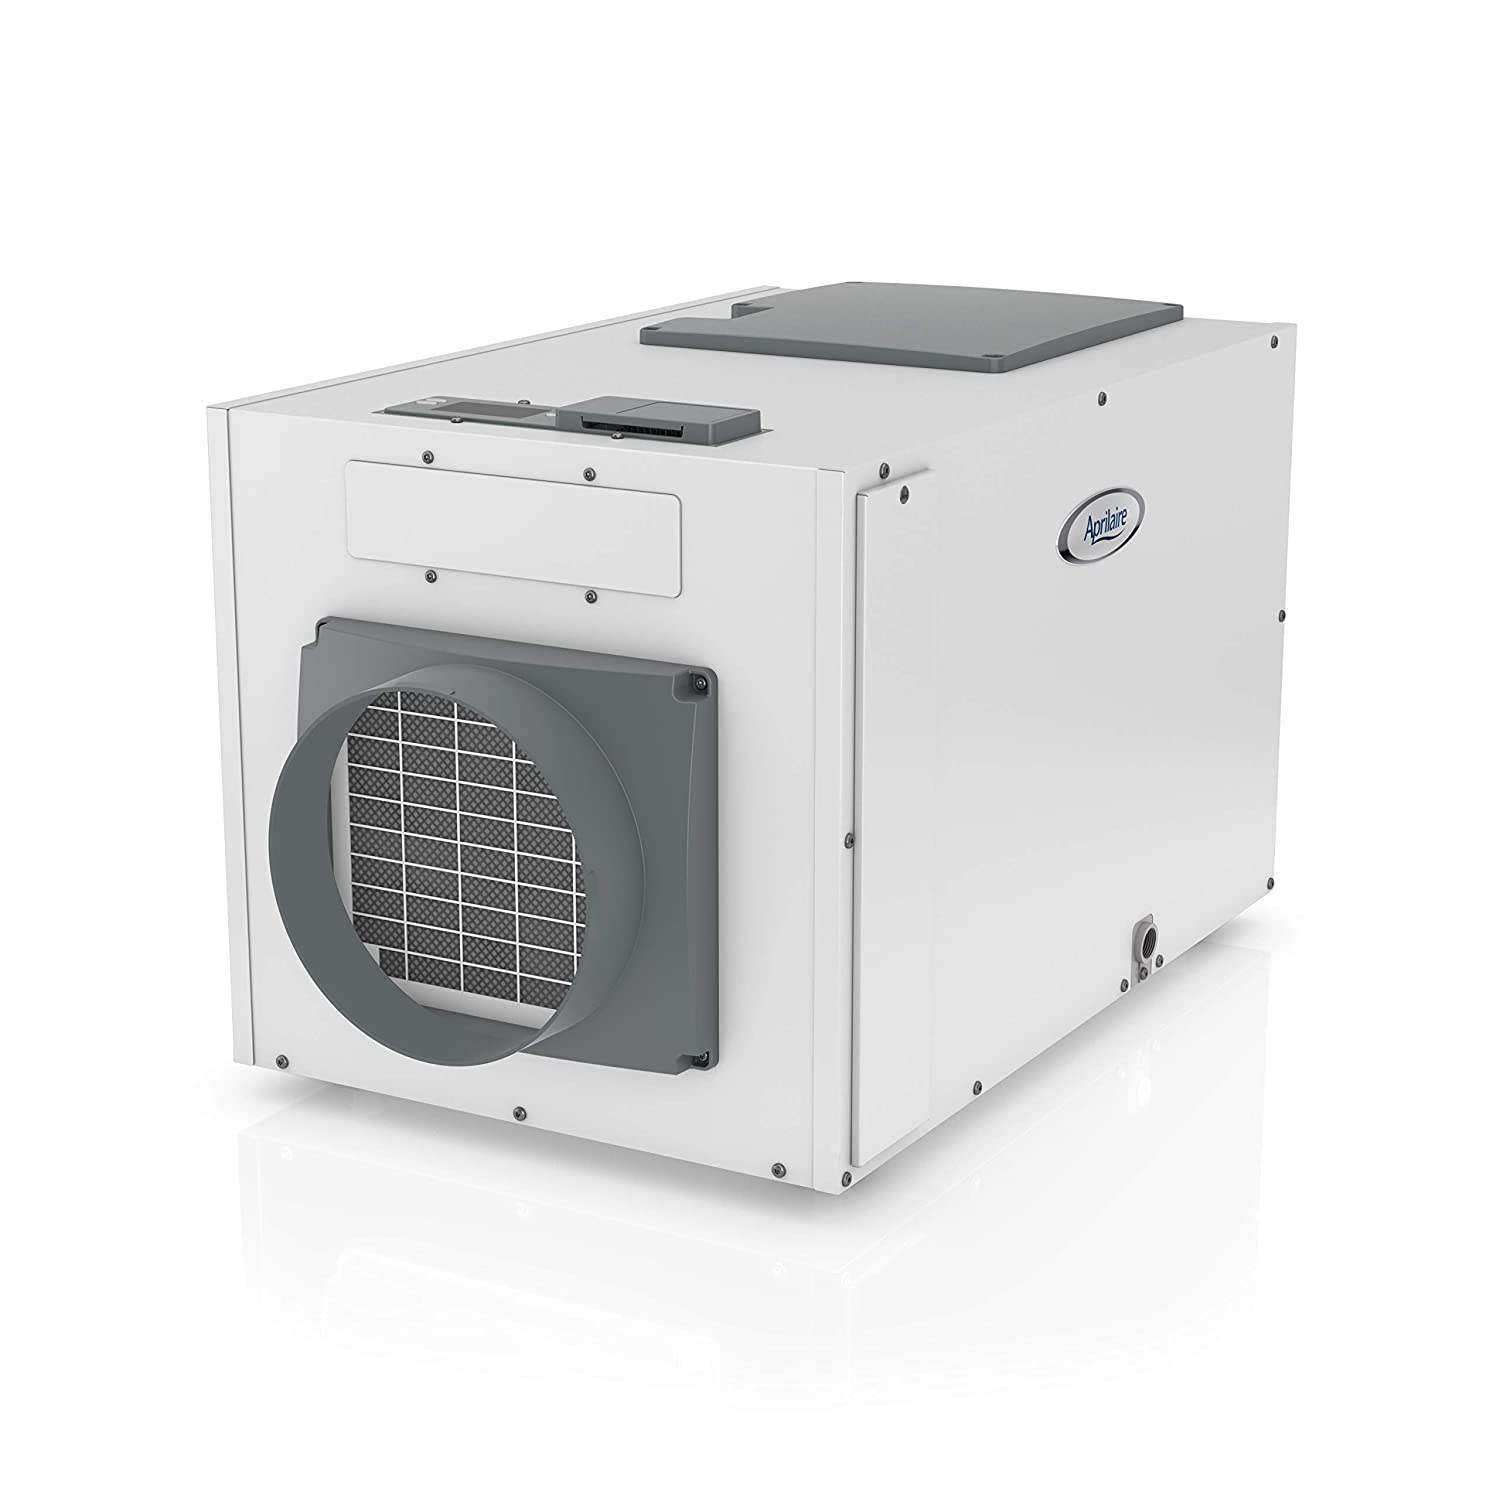 Aprilaire 1870 XL Whole Home Pro Dehumidifier Review